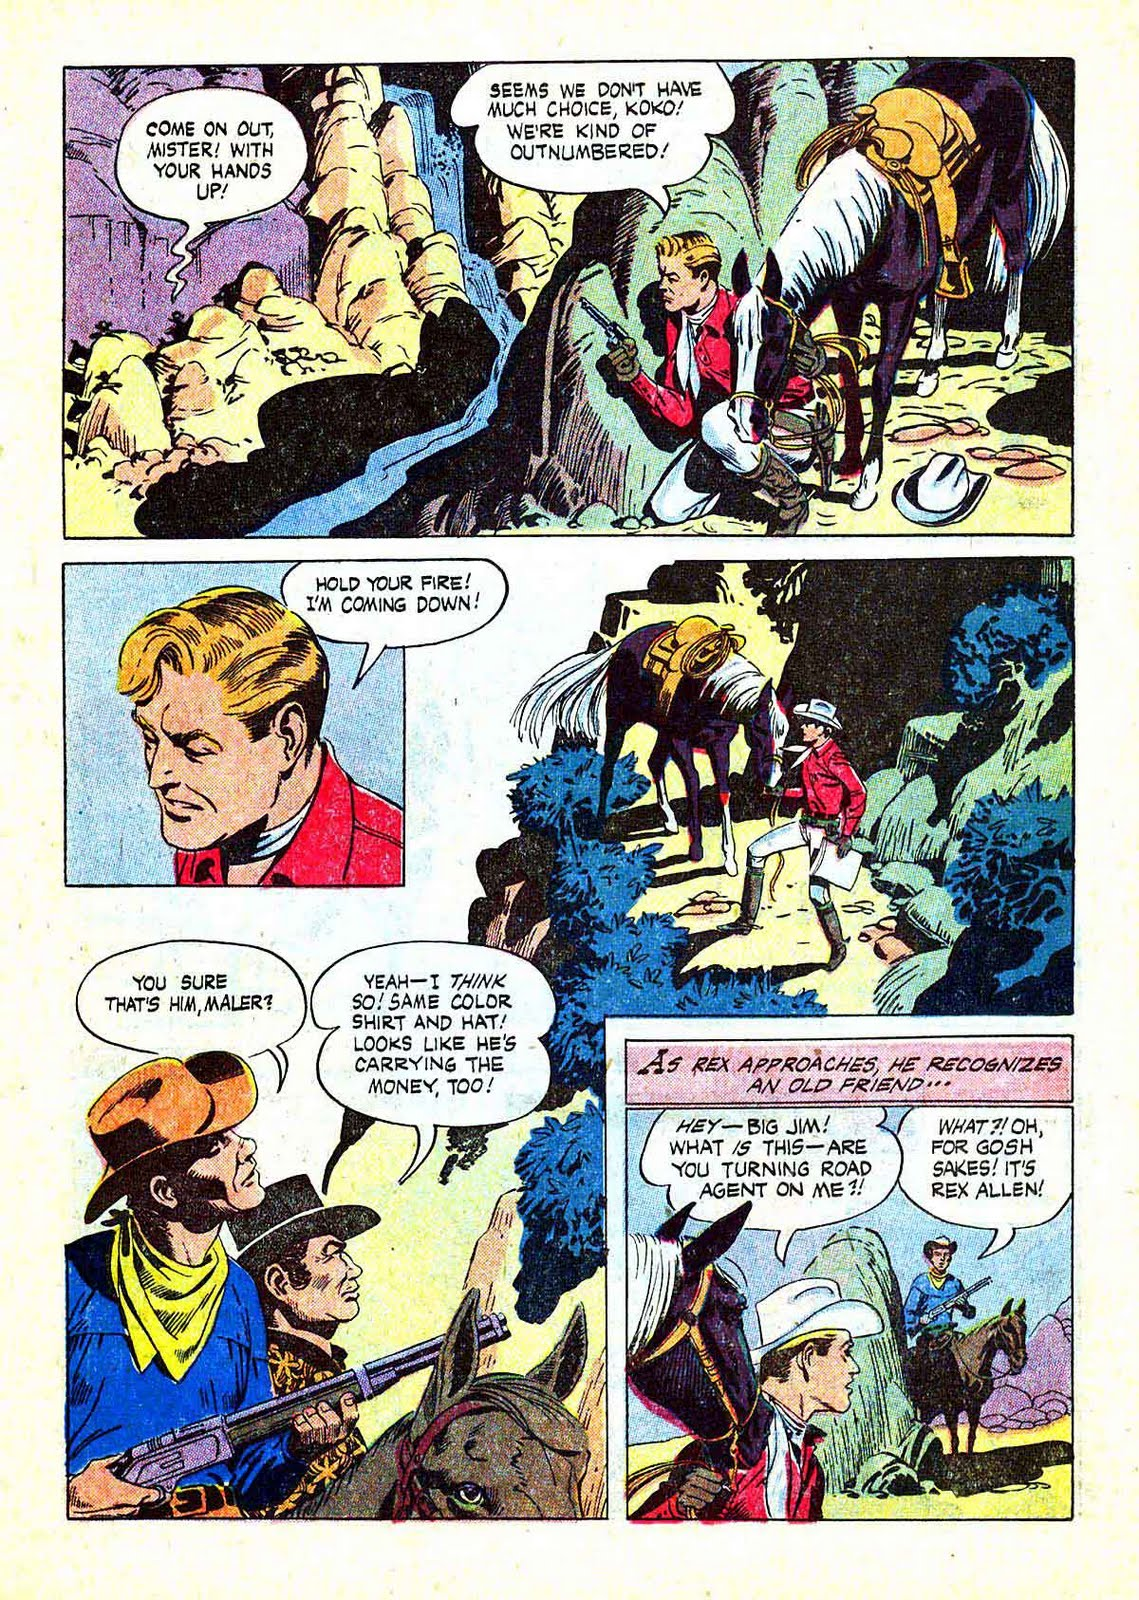 Rex Allen v1 #27 dell western comic book page art by Russ Manning